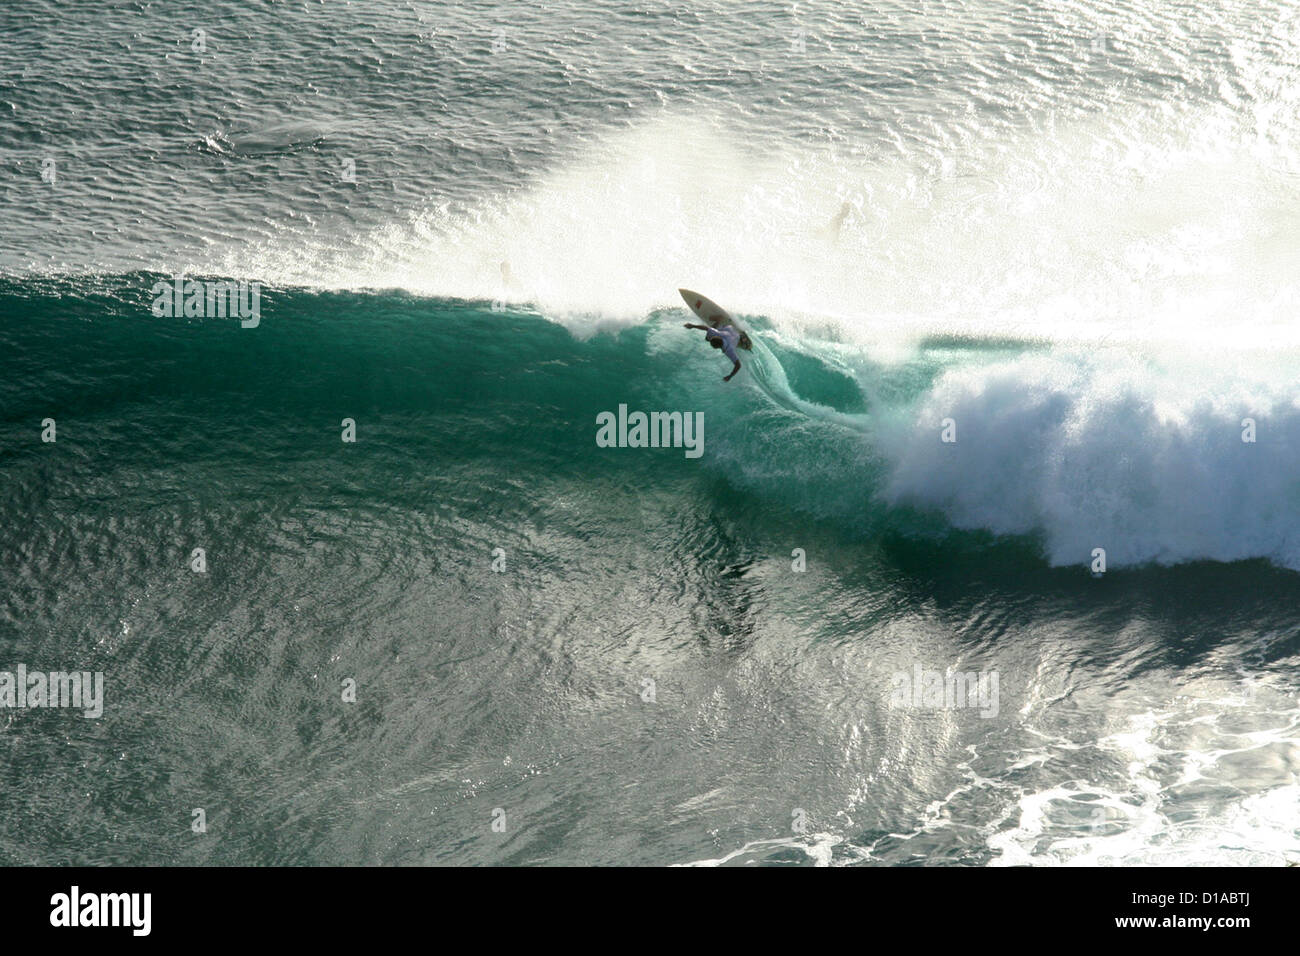 Surfer riding a wave, Maui, Hawaii Stock Photo